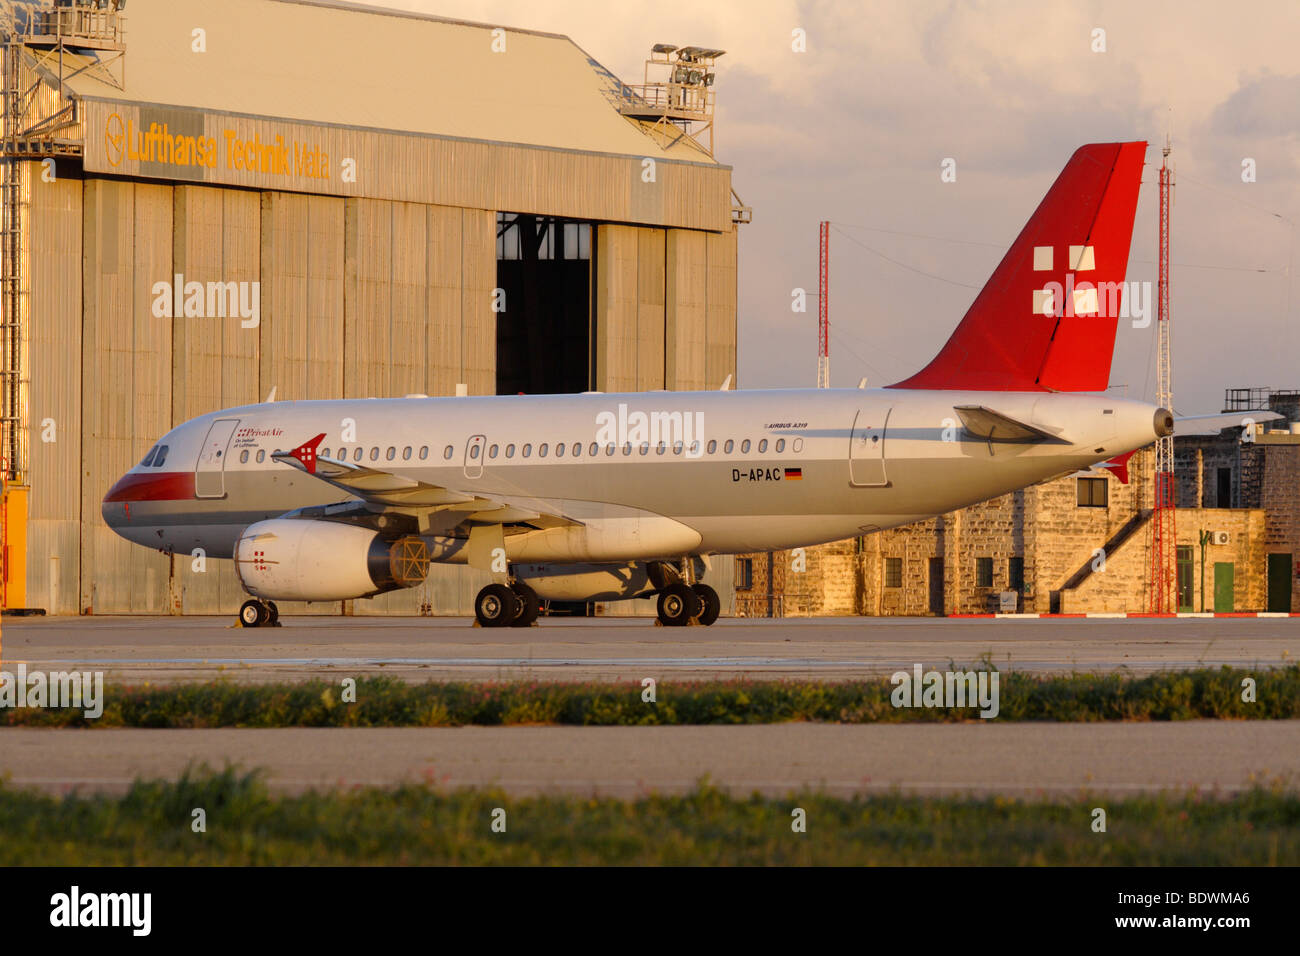 PrivatAir Airbus A319LR at Lufthansa Technik Malta - Stock Image